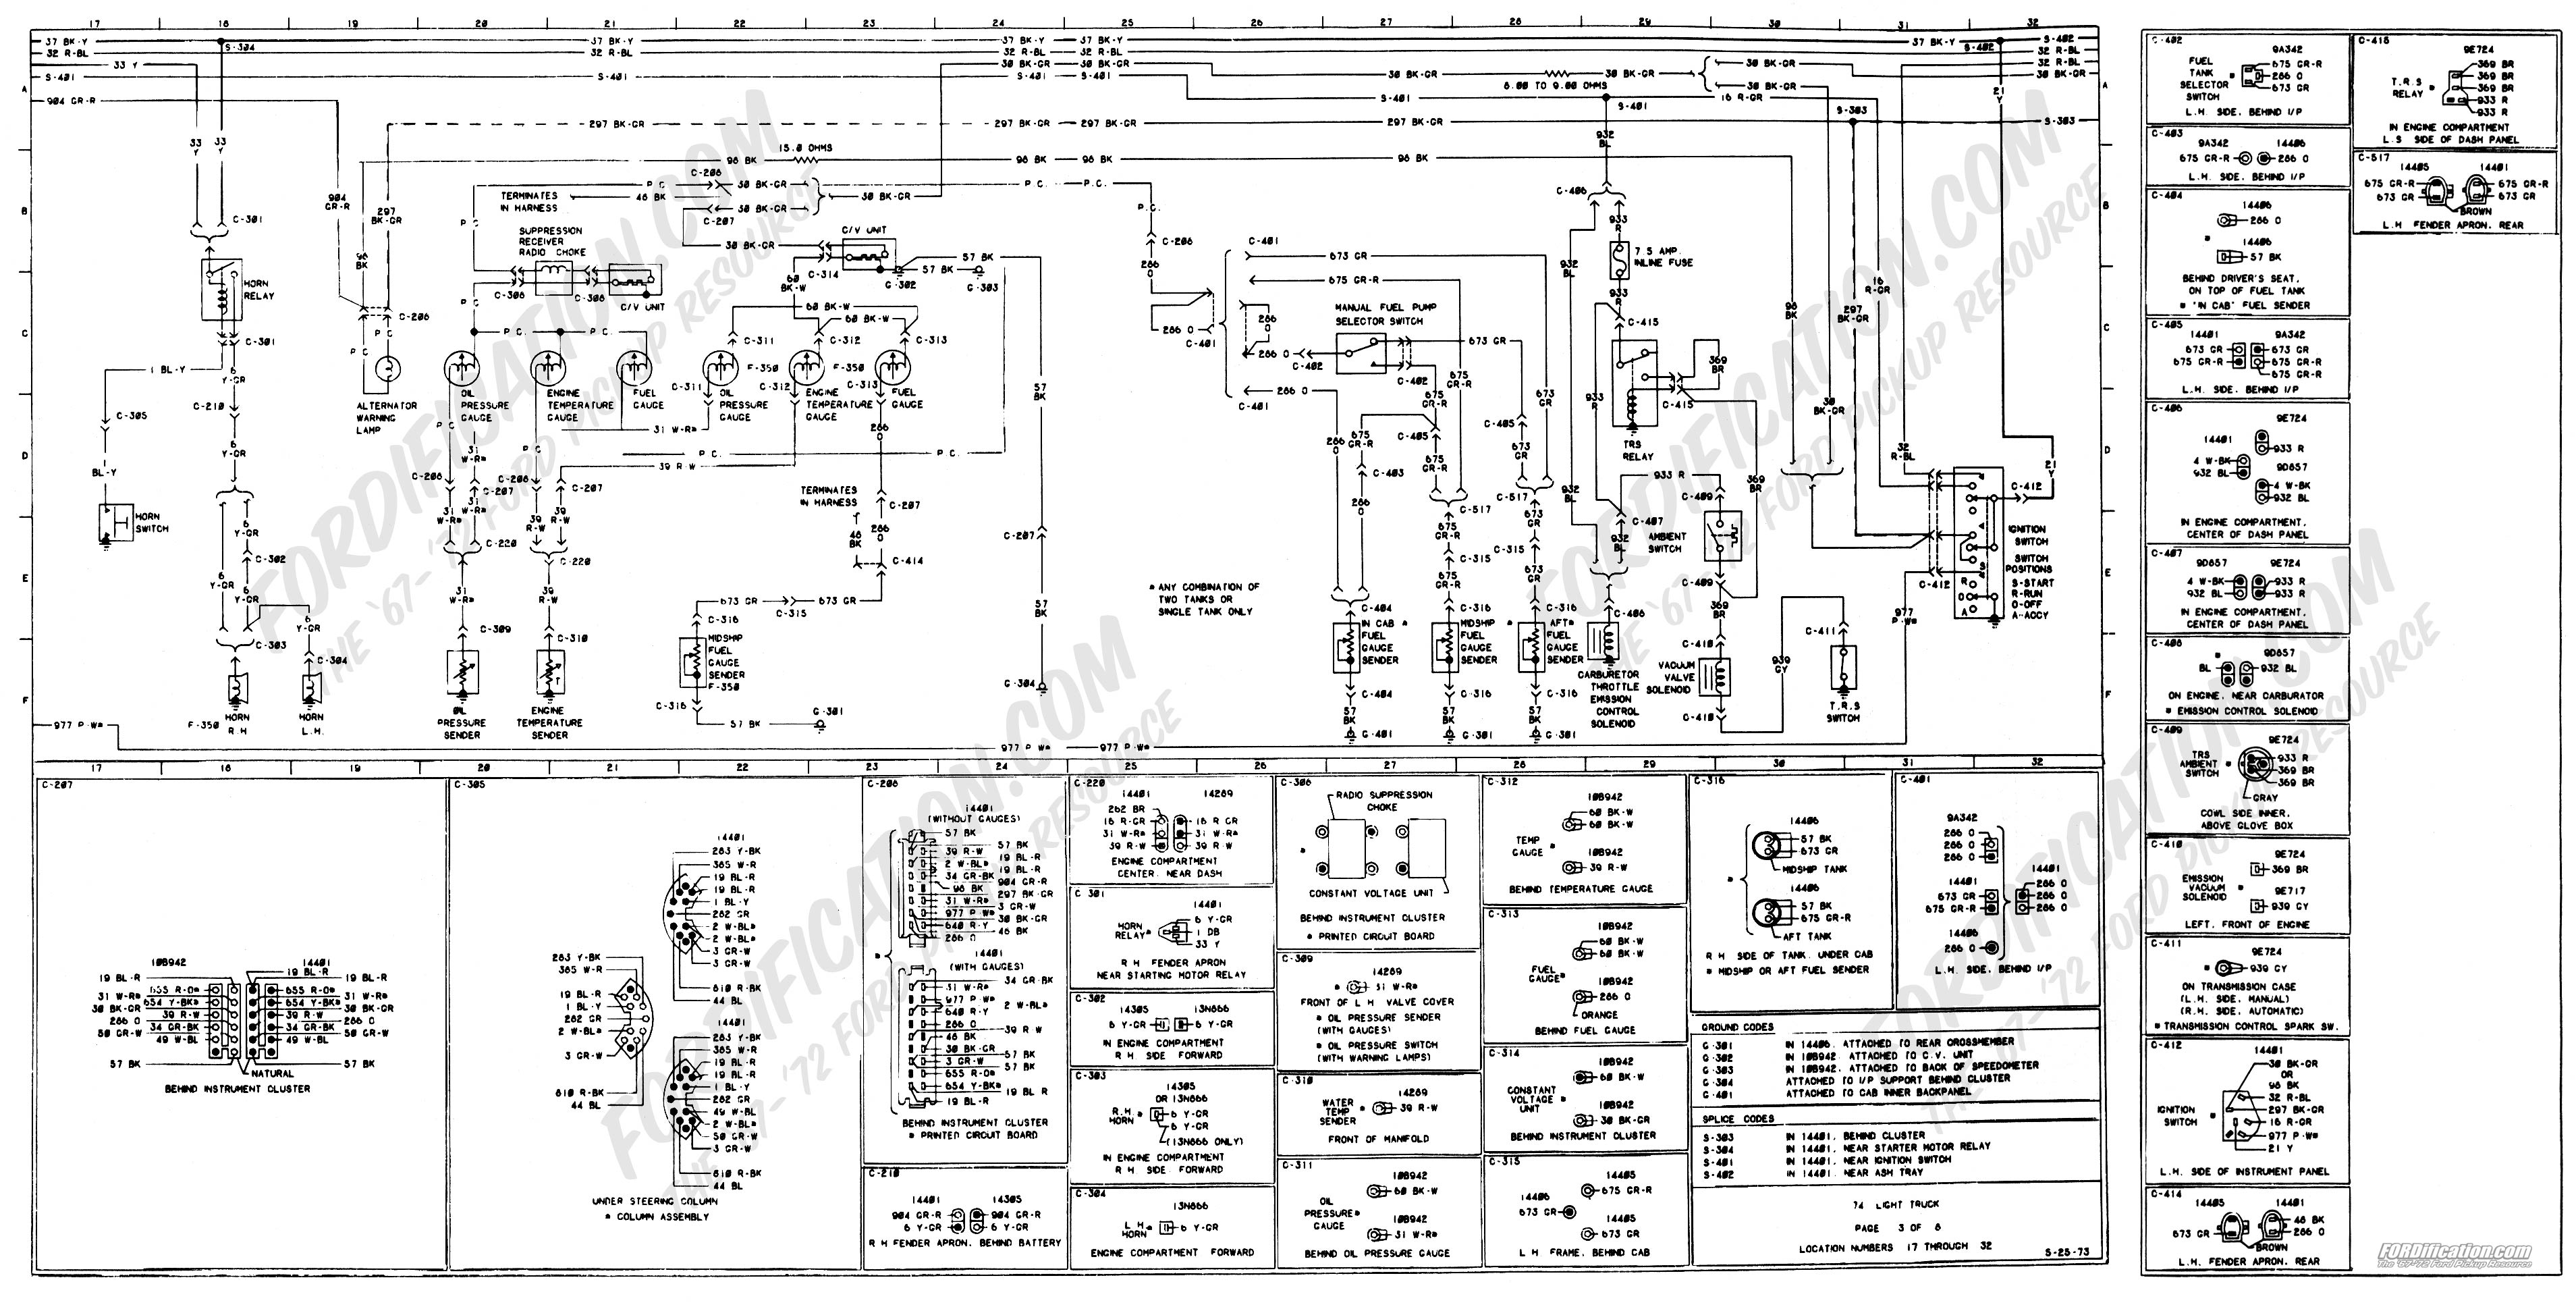 1973 1979 ford truck wiring diagrams schematics fordification net rh fordification net 2004 ford explorer radio wiring diagram 2004 ford focus wiring diagram